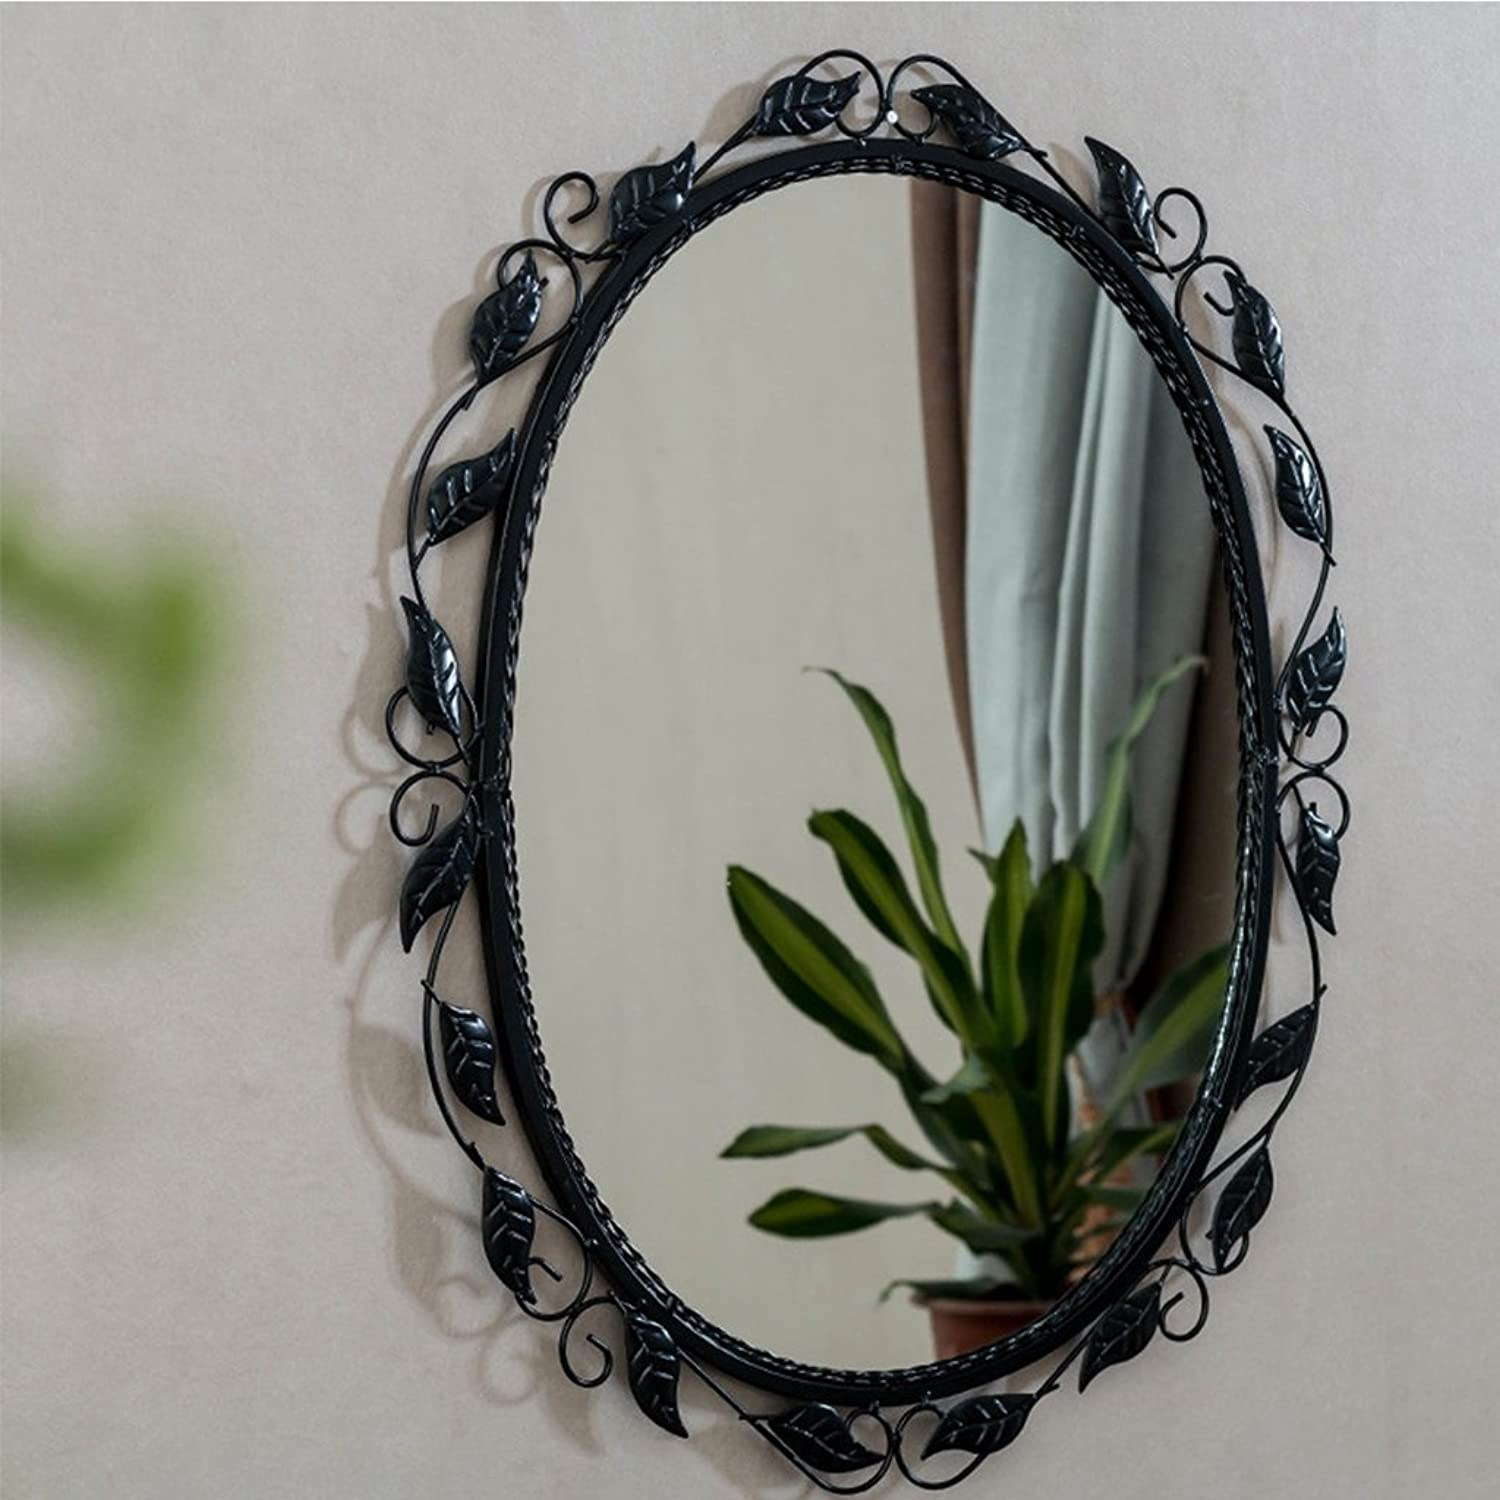 Bathroom Wall Mirror Embedded Oval Wall Mirror greenical Horizontal Vanity Mirror Bedroom Living Room European Wrought Iron Wall Mirror (color   Black)